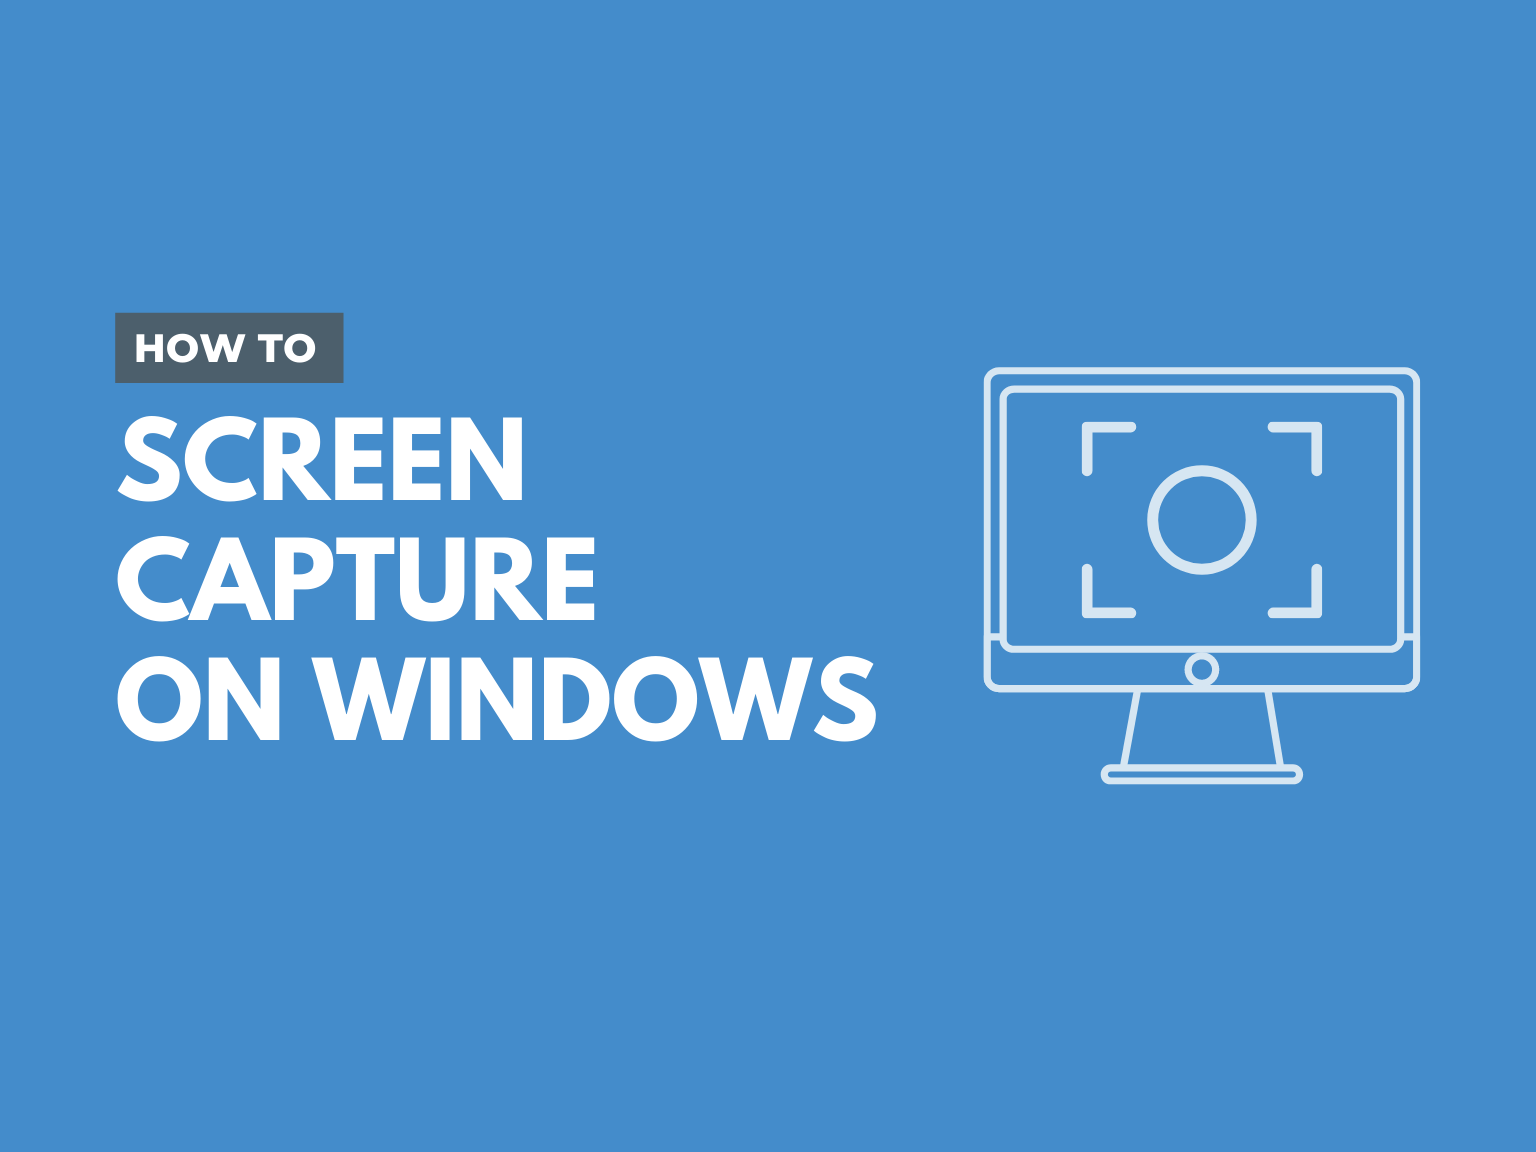 How to Screen Capture on Windows